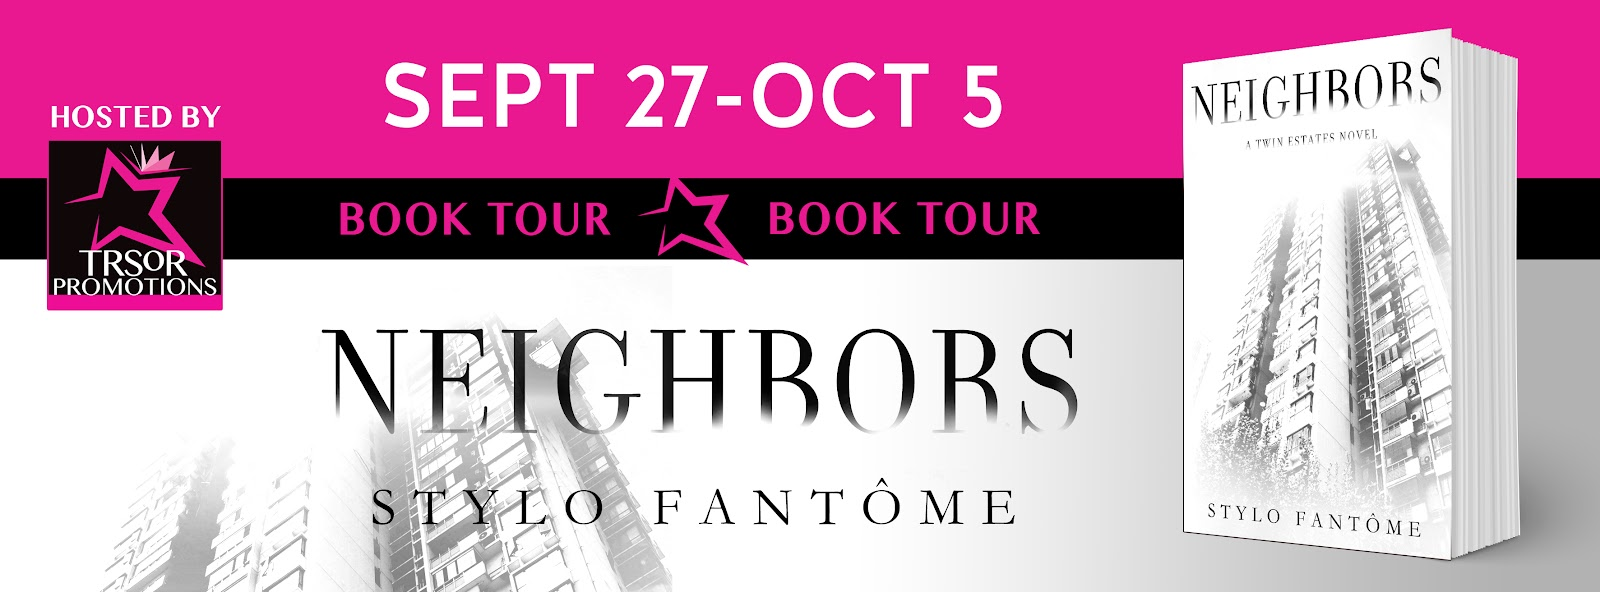 NIGHBORS_BOOK_TOUR.jpg